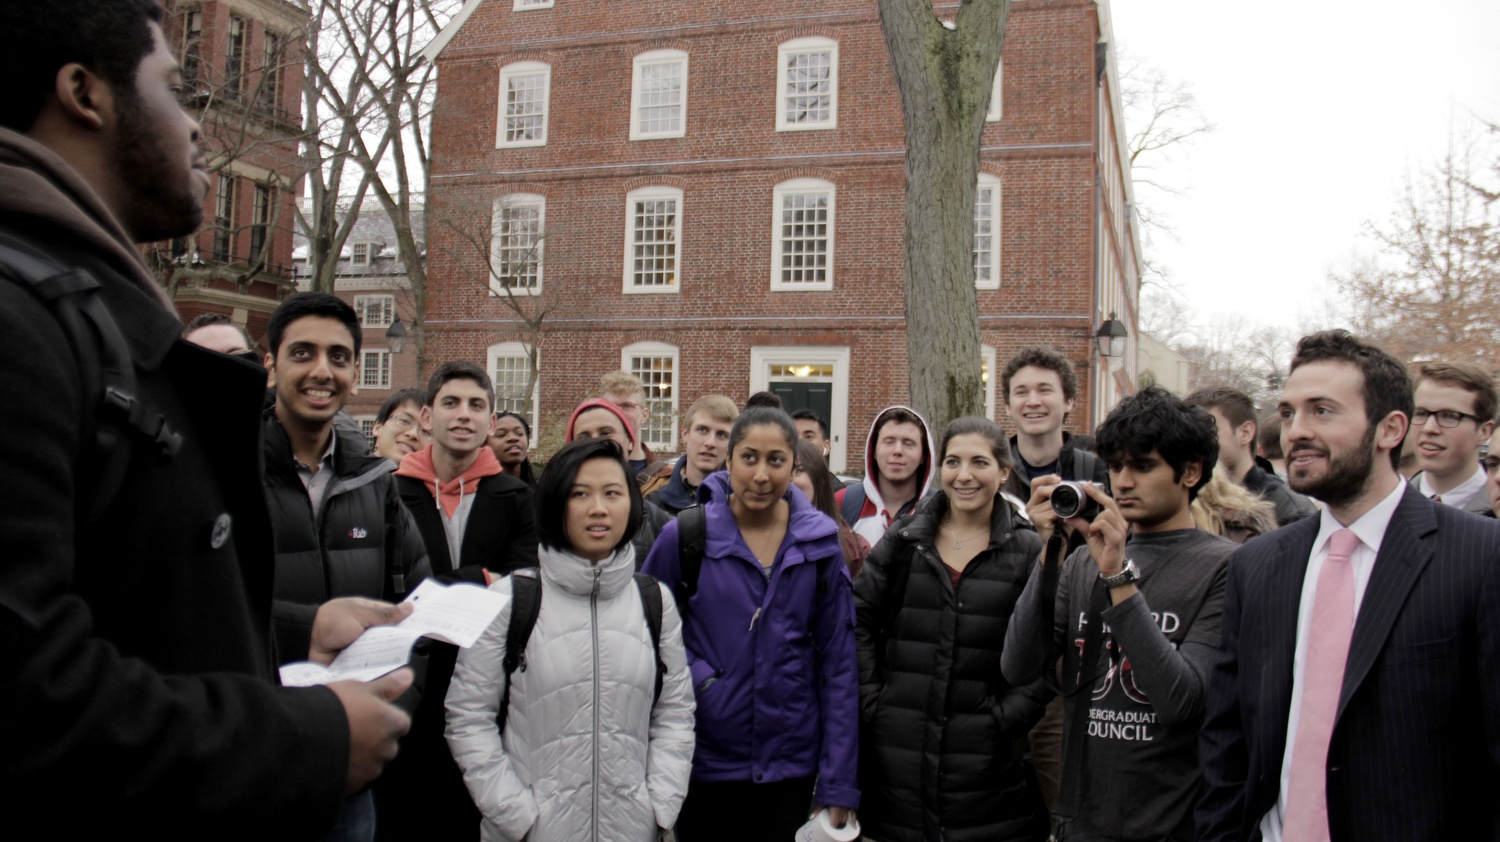 With public declarations to students replete with impassioned rhetoric about the need for more funding, they convened with several top Harvard administrators and hosted a rally outside Massachusetts Hall.